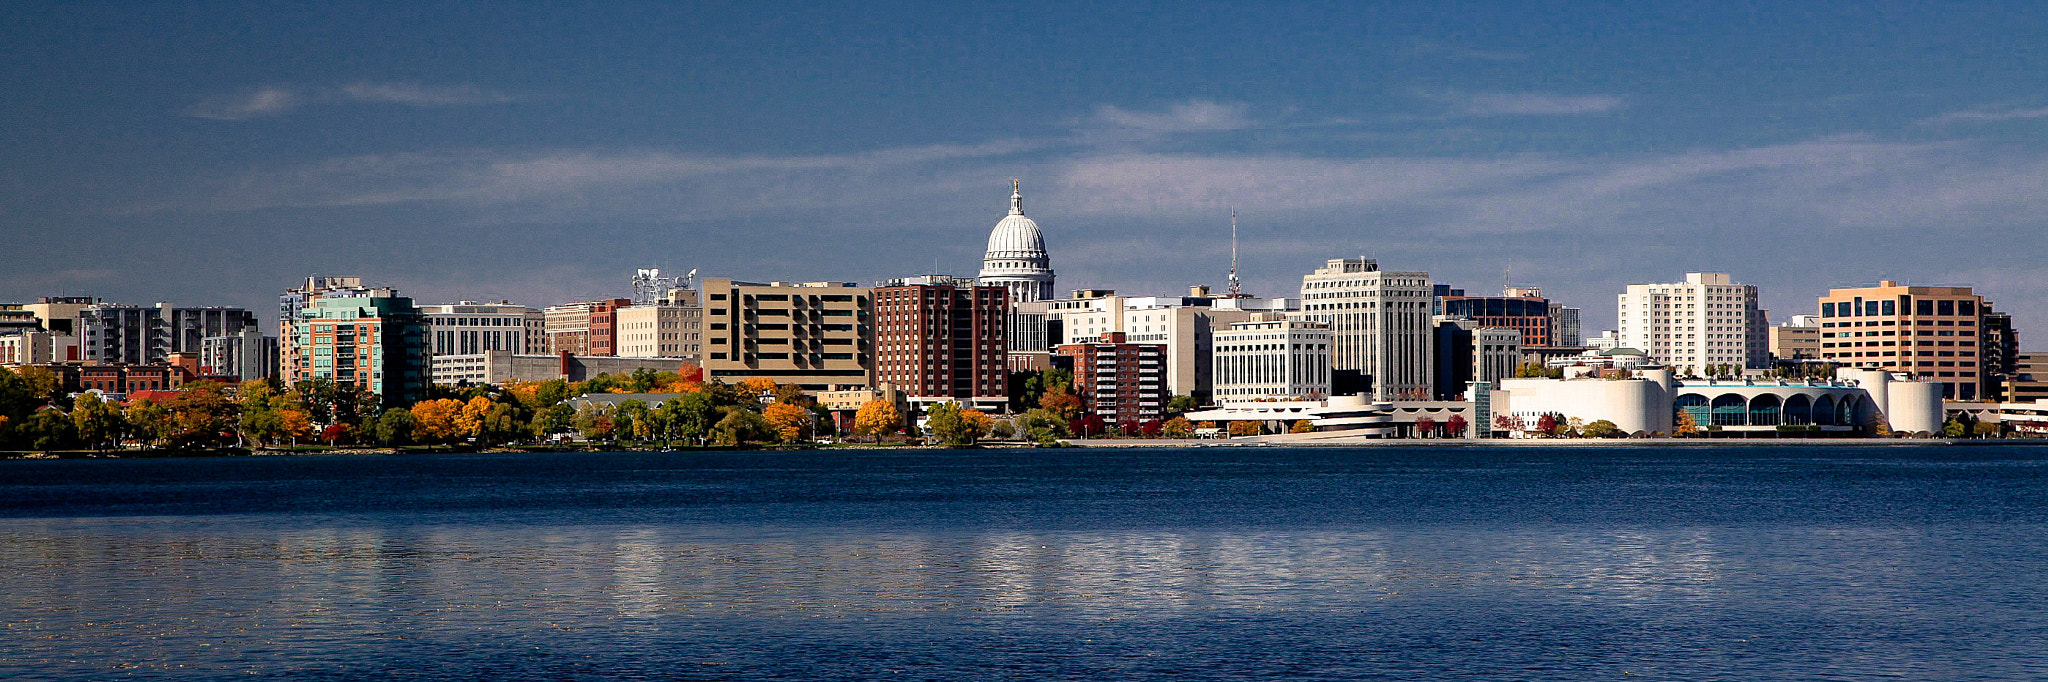 Photograph Madison by C. Feggestad on 500px